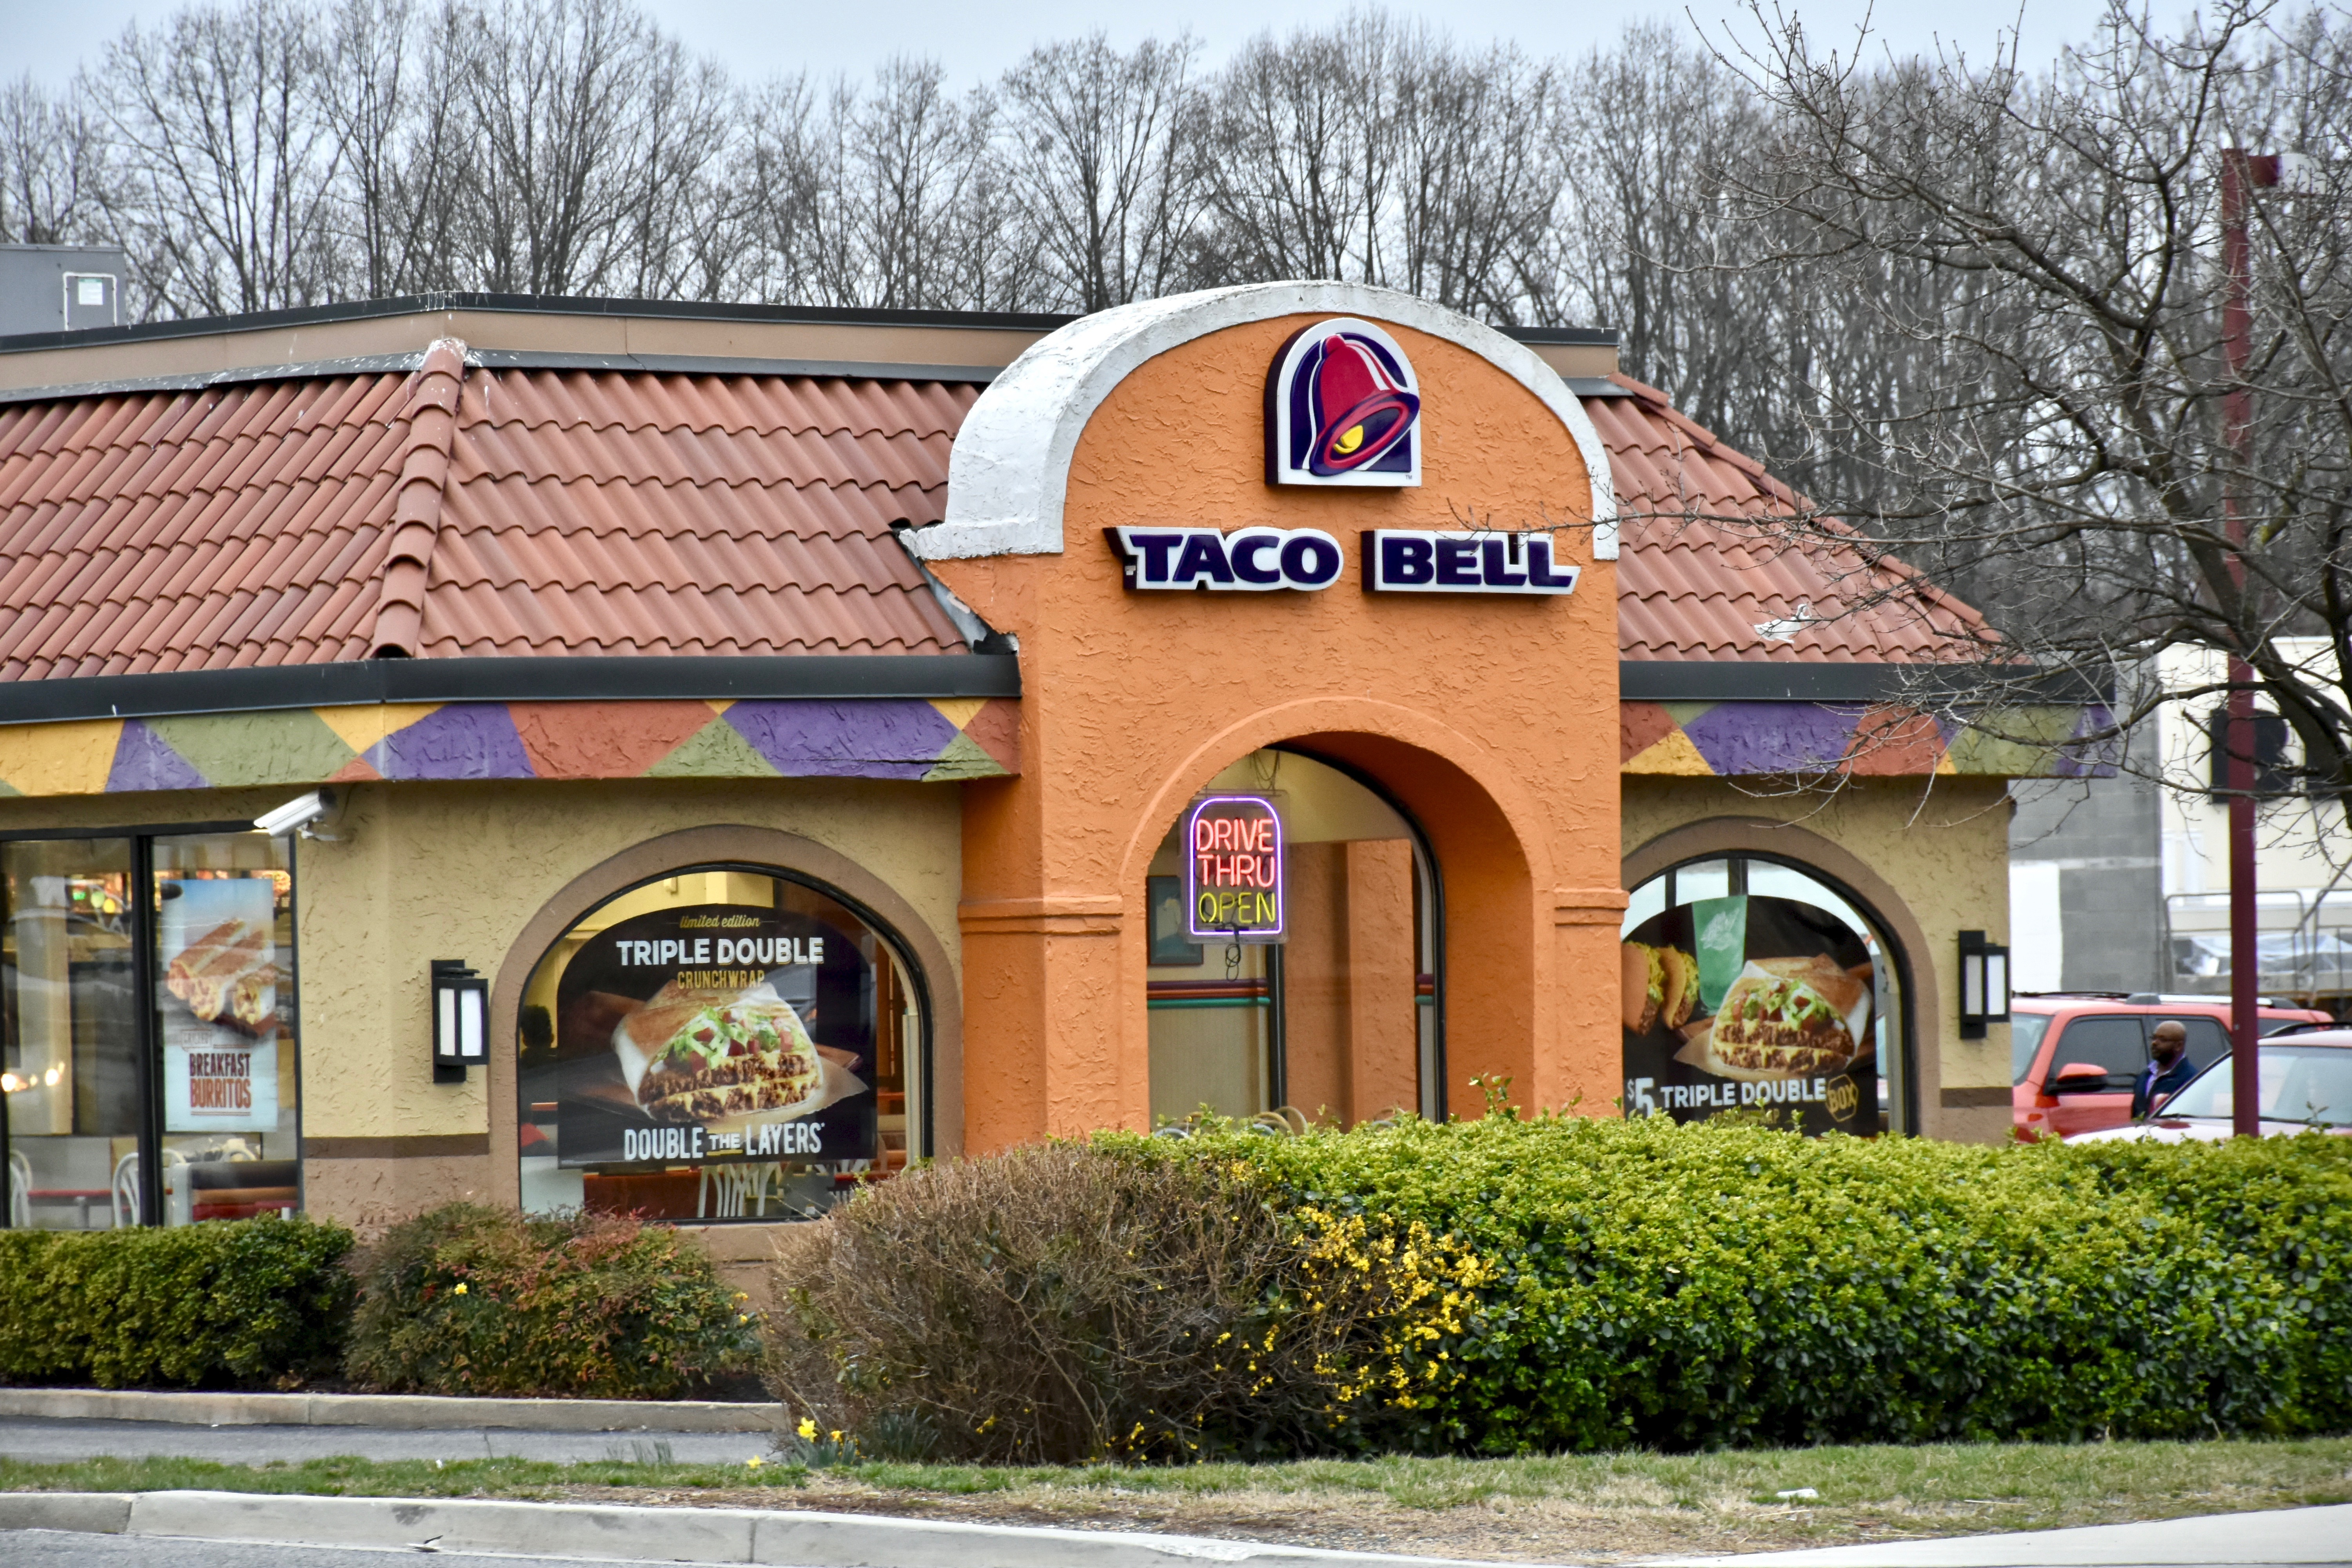 Man Gets Arrested For Cocaine Possession, Tries To Bribe Cop With Taco Bell